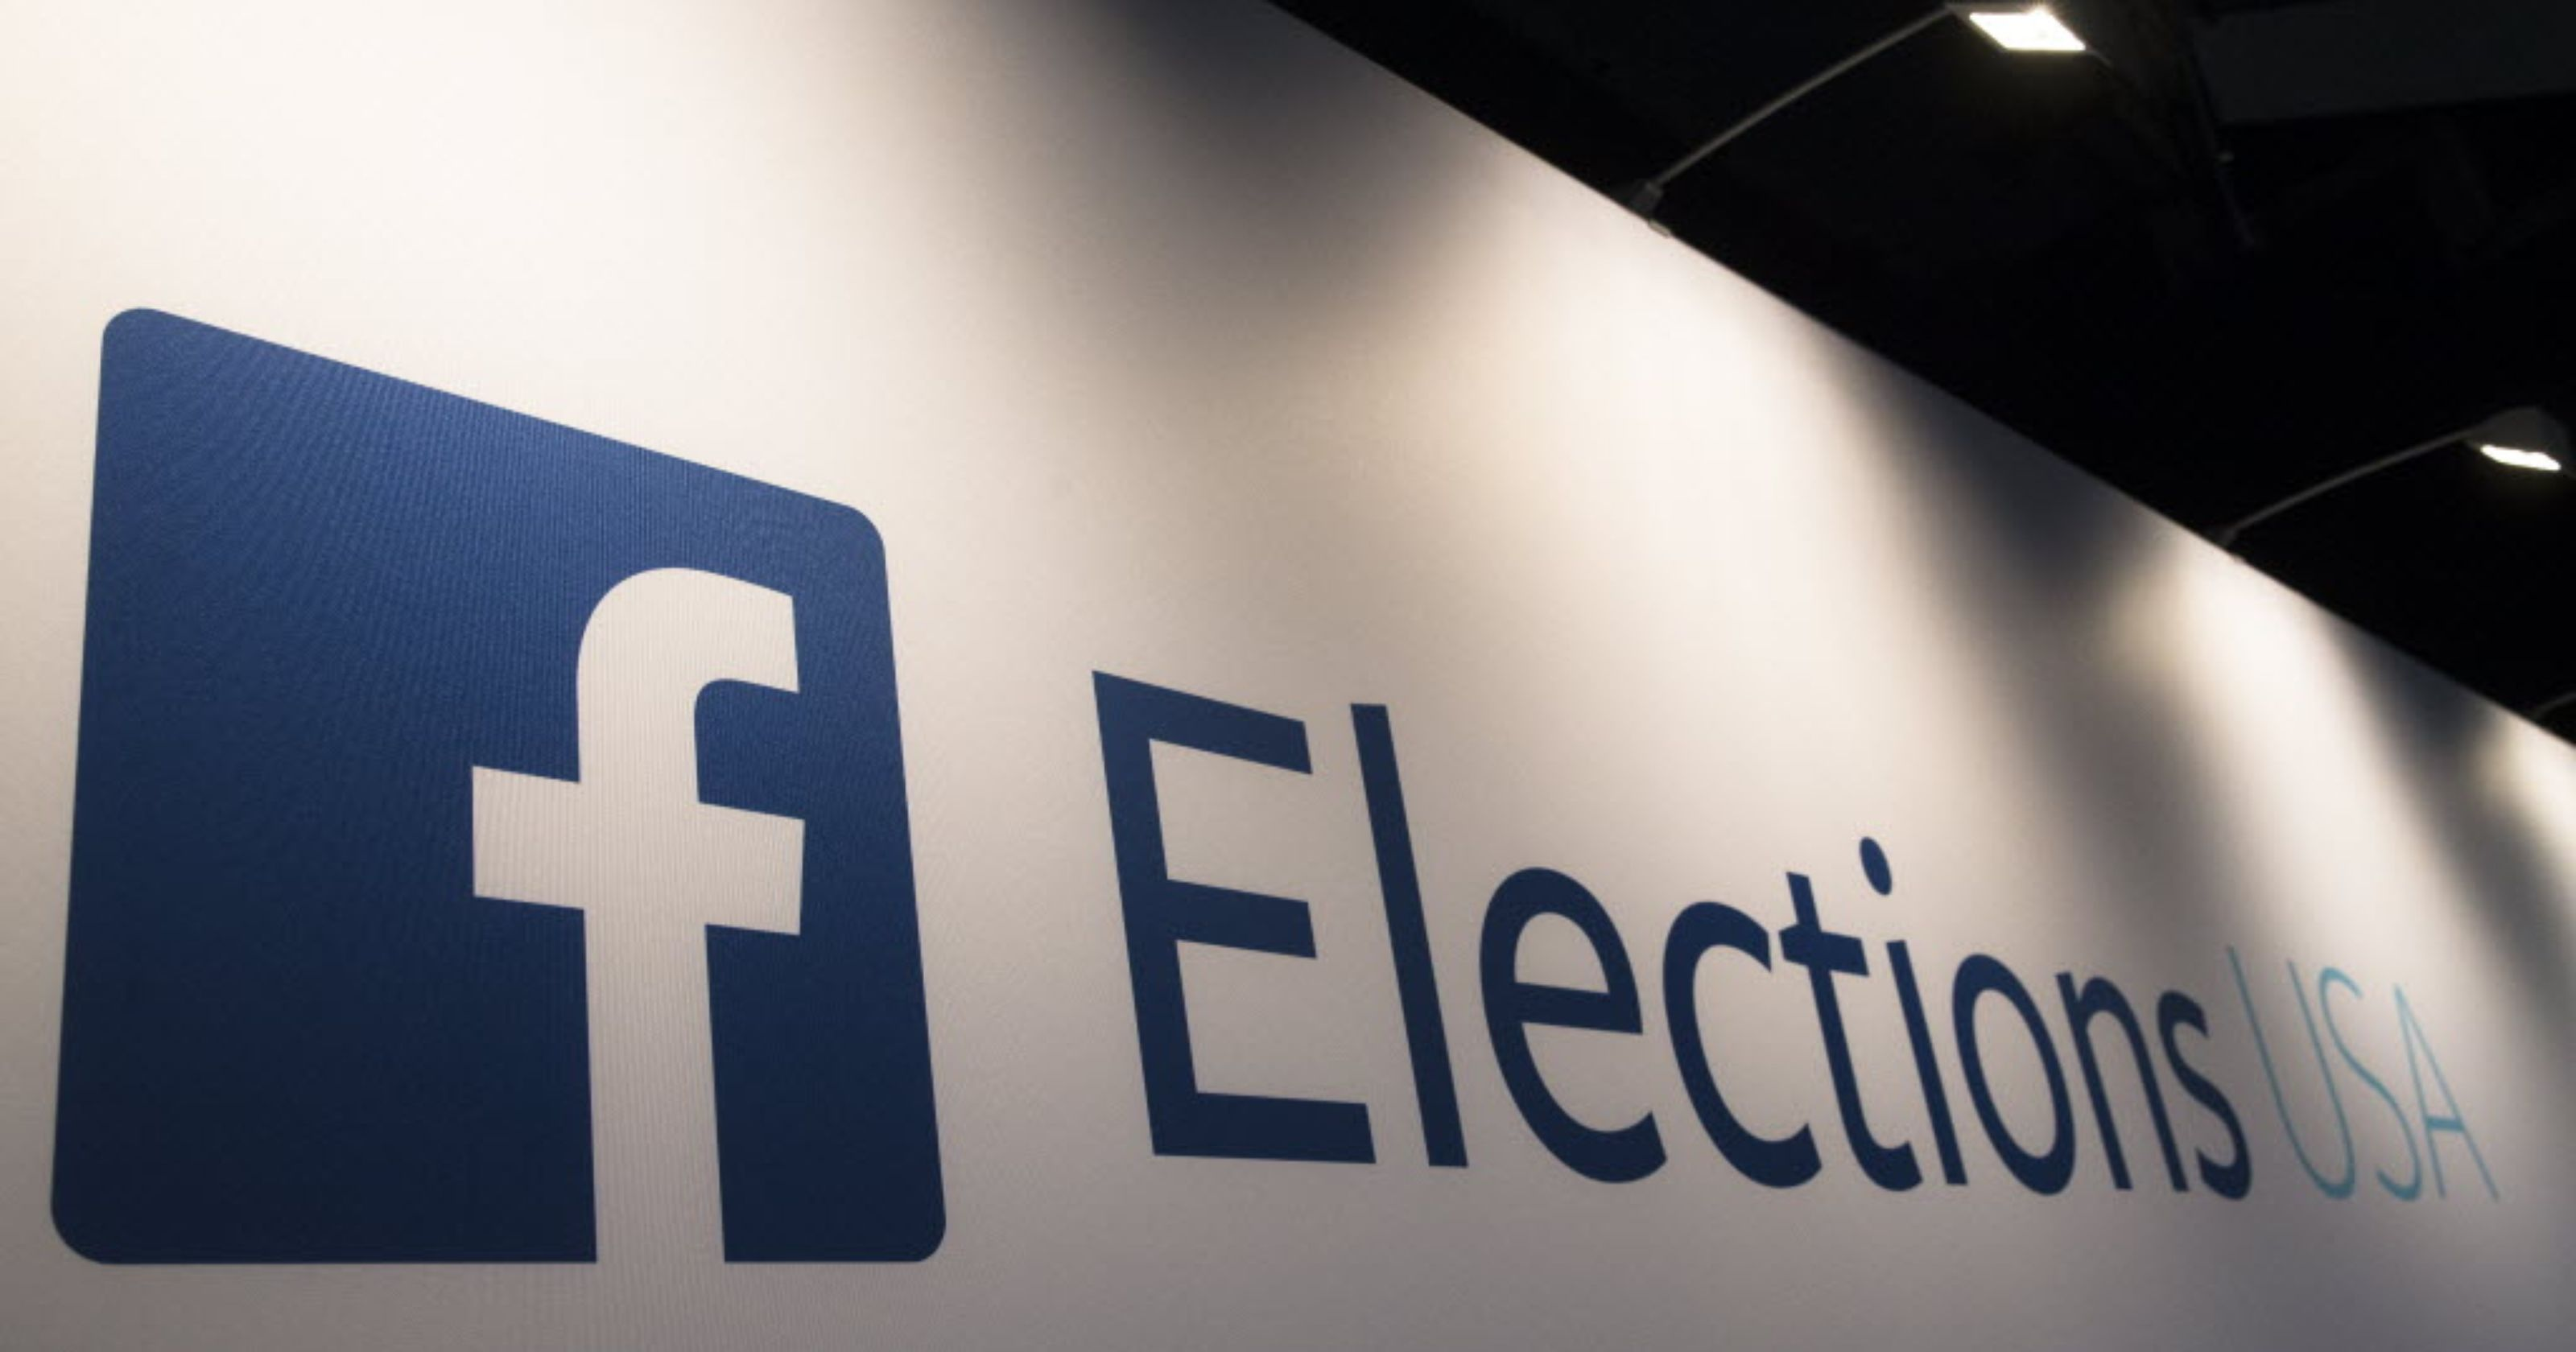 Facebook has criticised for rigging the elections